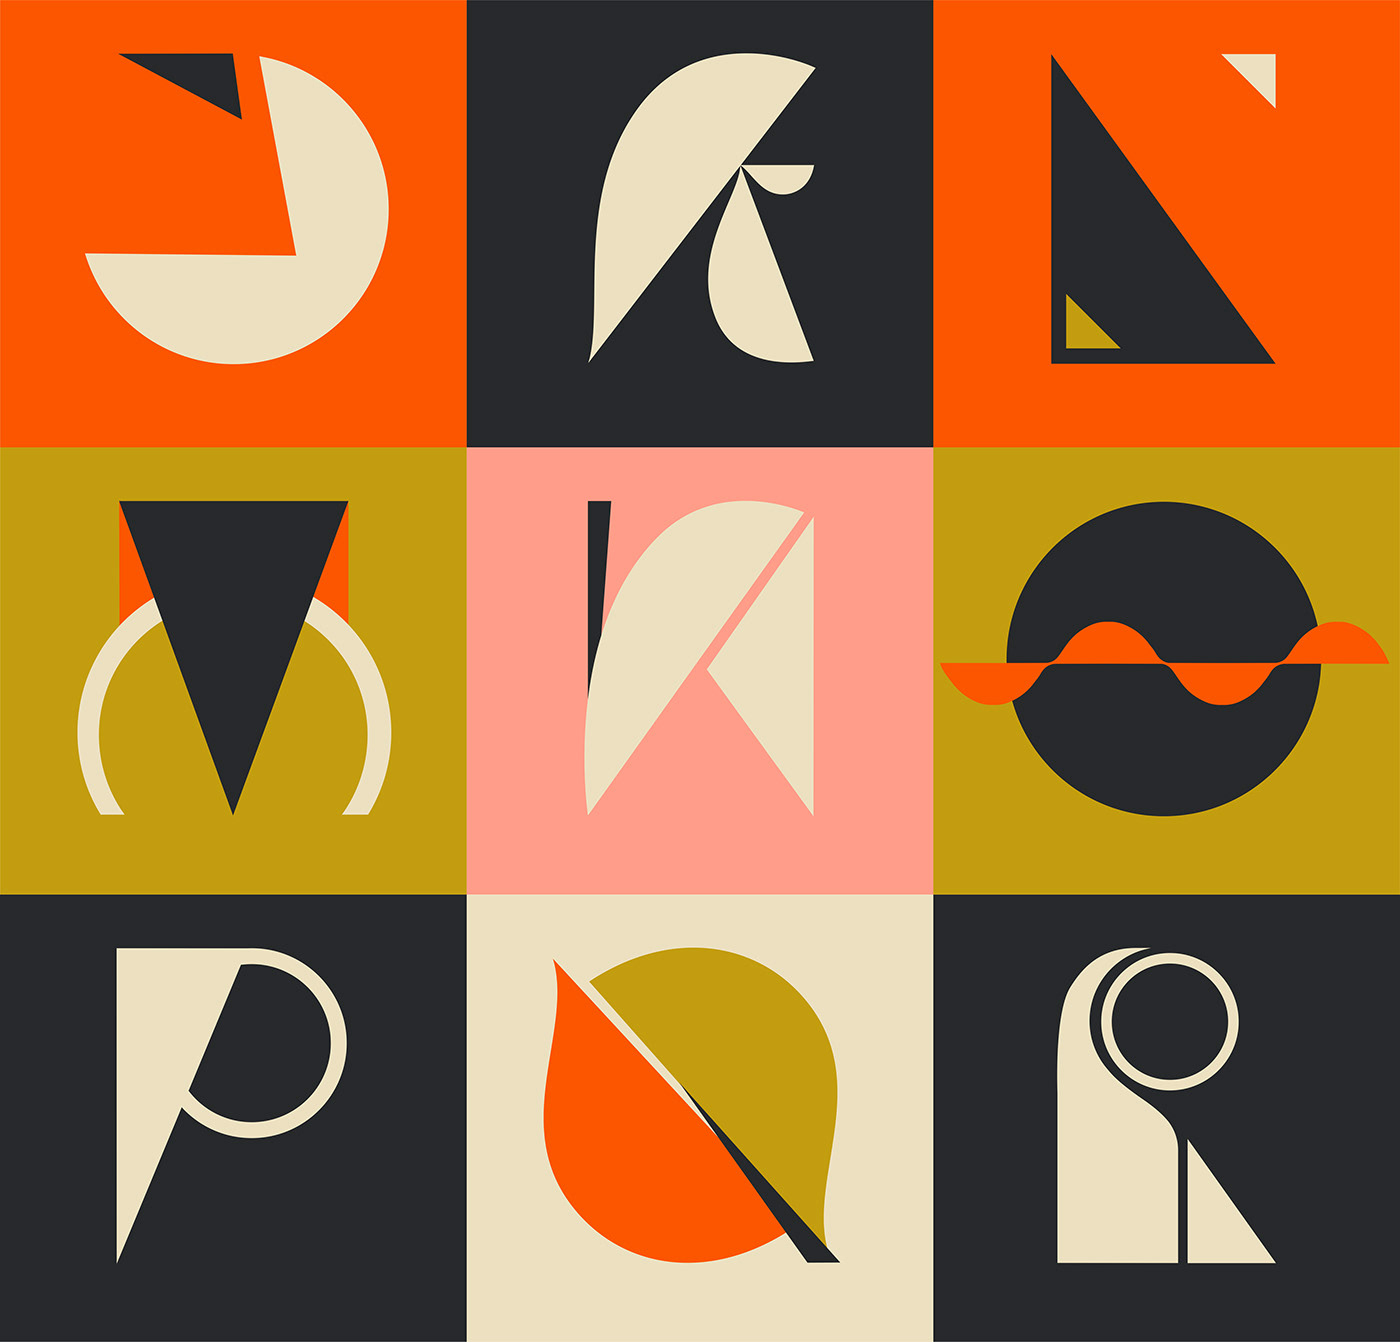 36days 36daysoftype Brutalism font graphicdesign lettering Logotype type typography